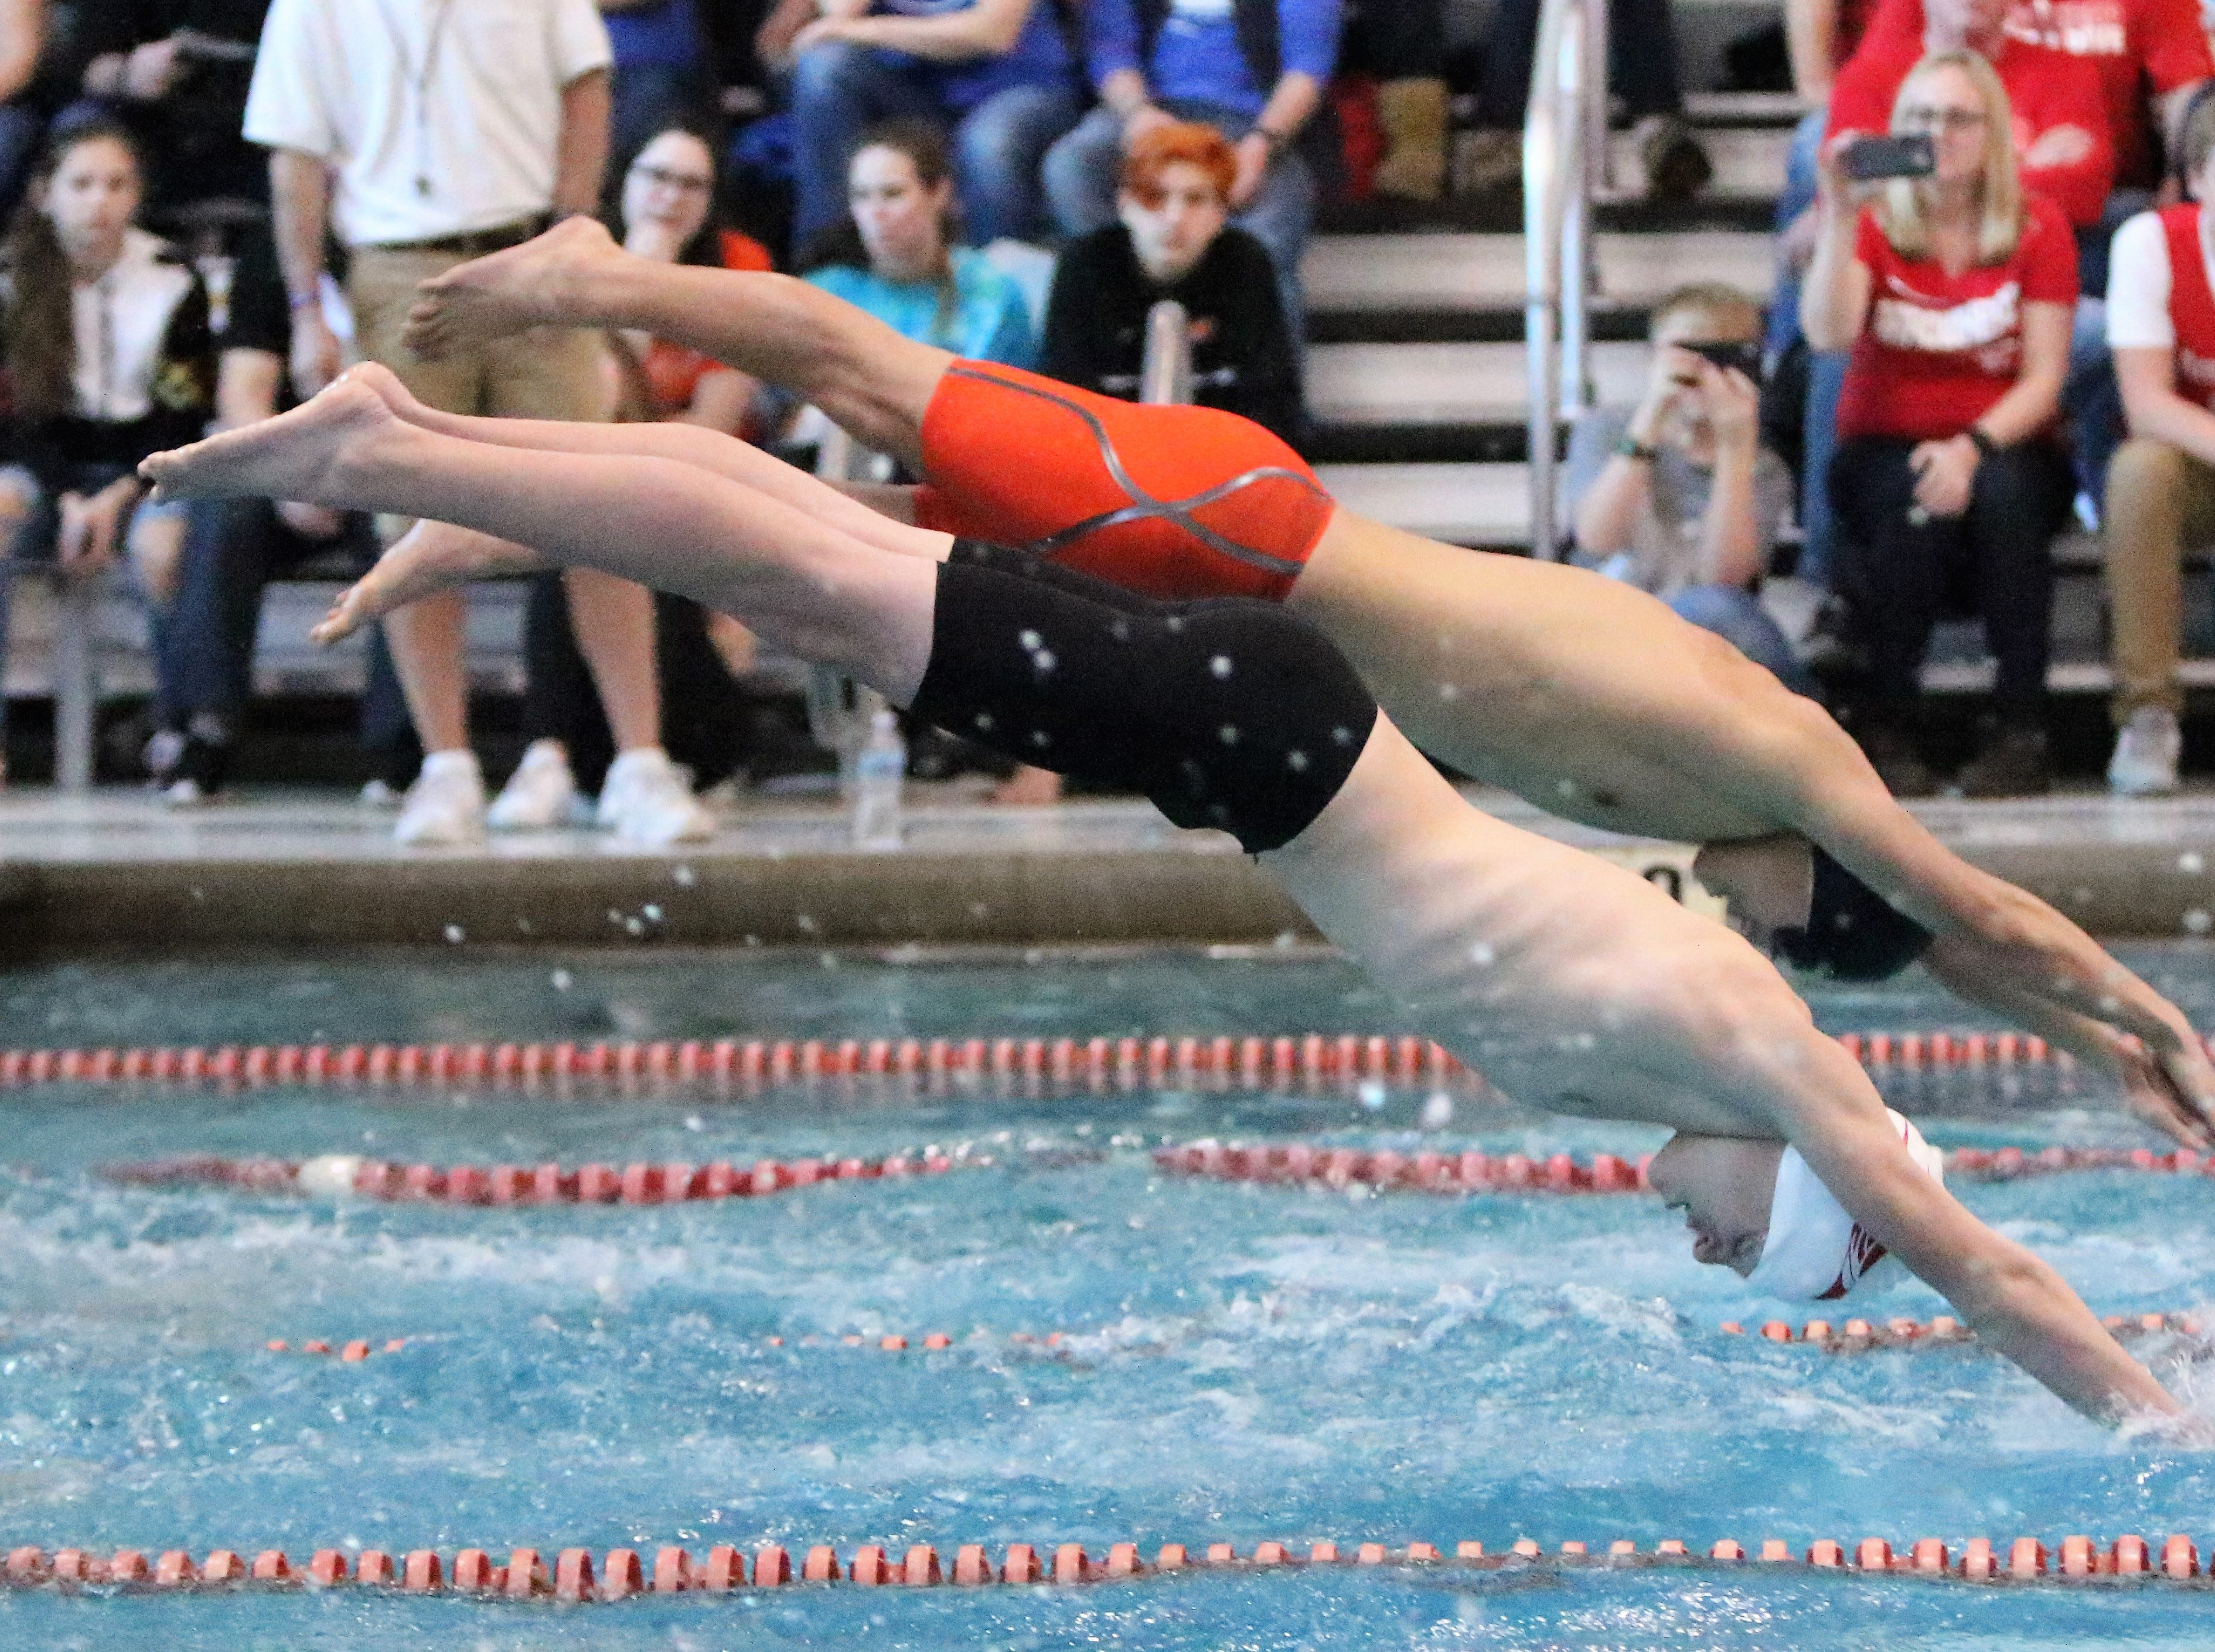 Arrowhead's Aiden Jacobsen and Menomonee Falls' Josh Wu dive into the water at the WIAA sectional meet at Homestead High School on Feb. 9, 2019.